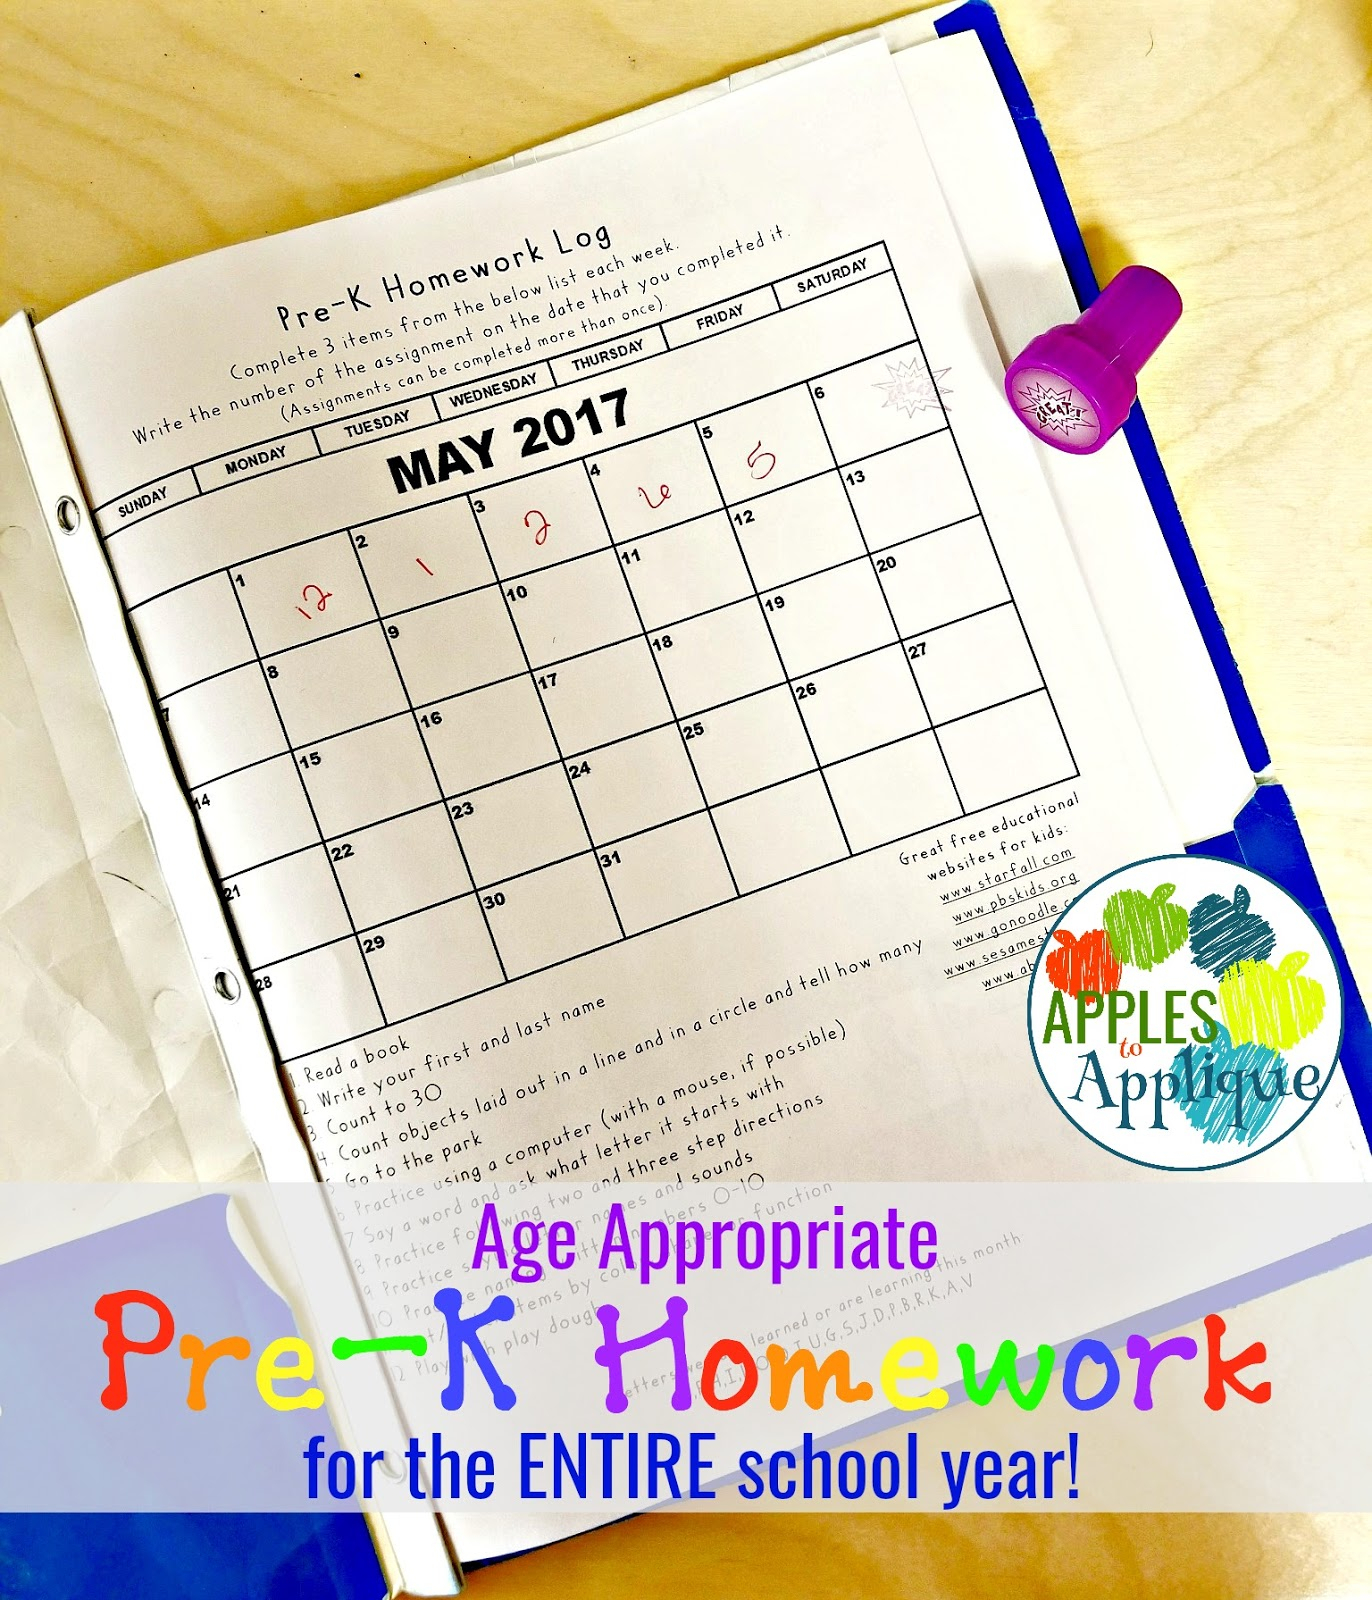 Apples To Applique: Age Appropriate Pre-K Homework